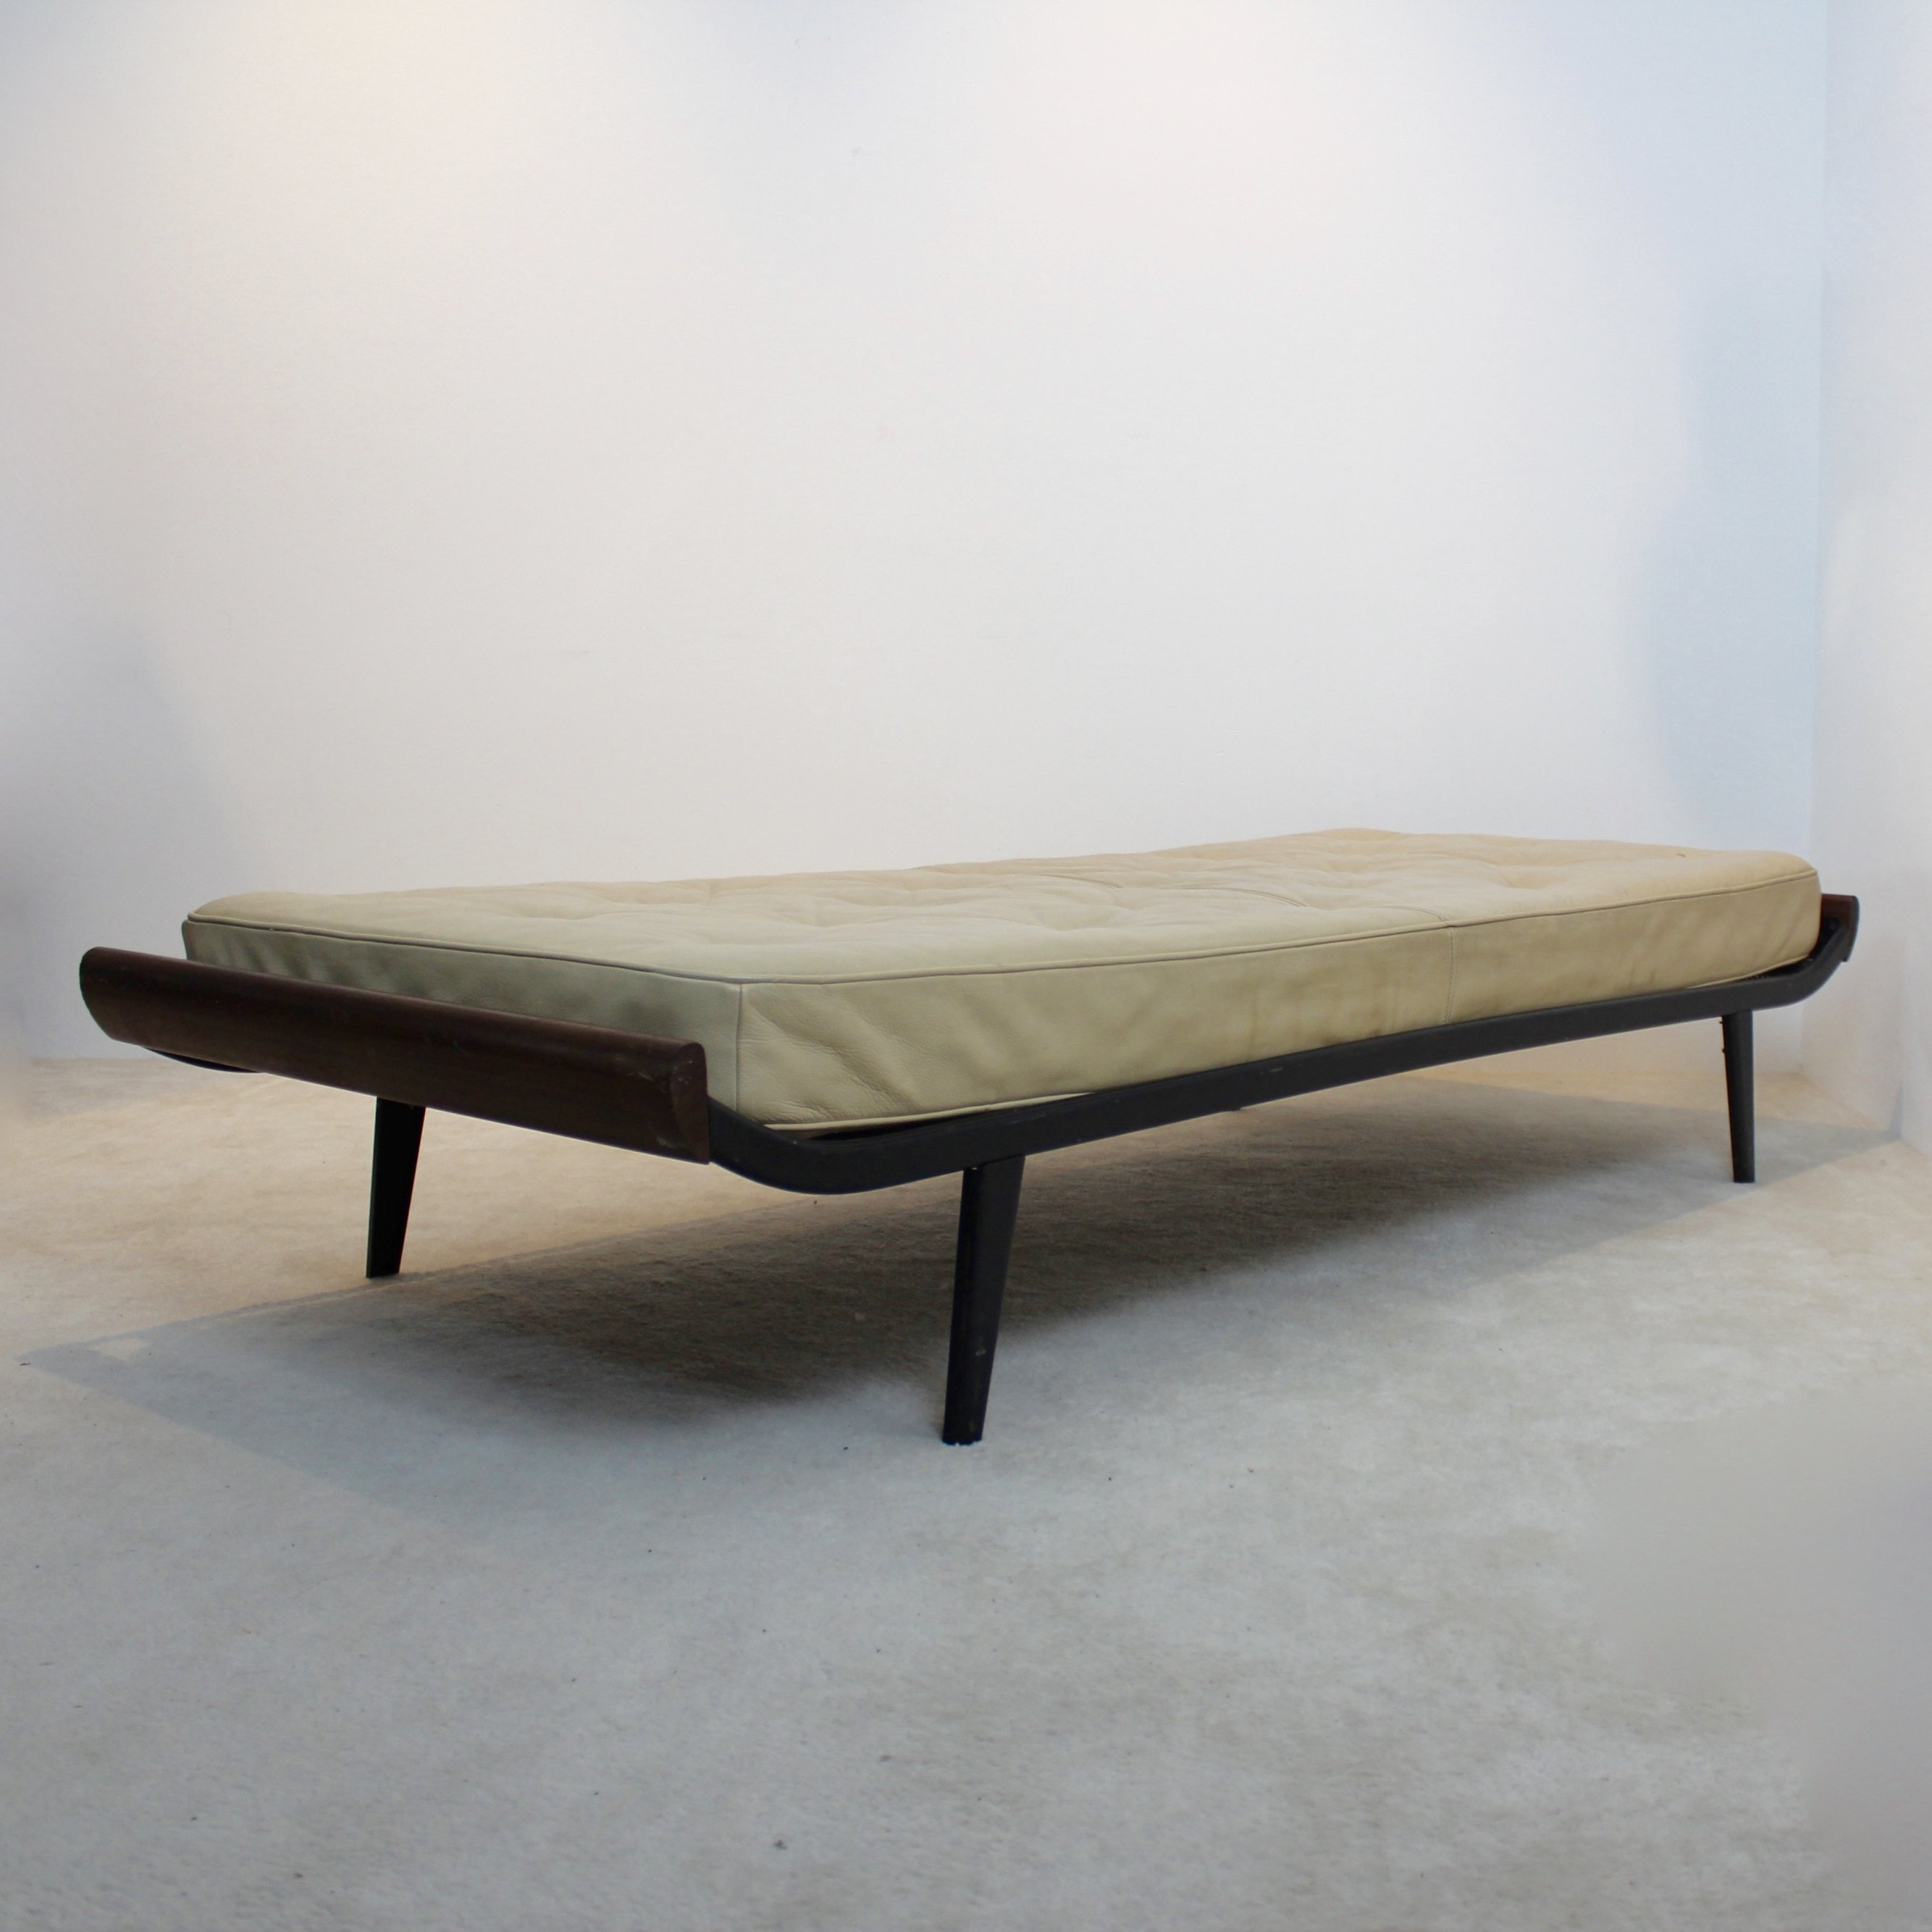 Cleopatra Daybed By Cordemeijer For Auping With Original Leather Mattress